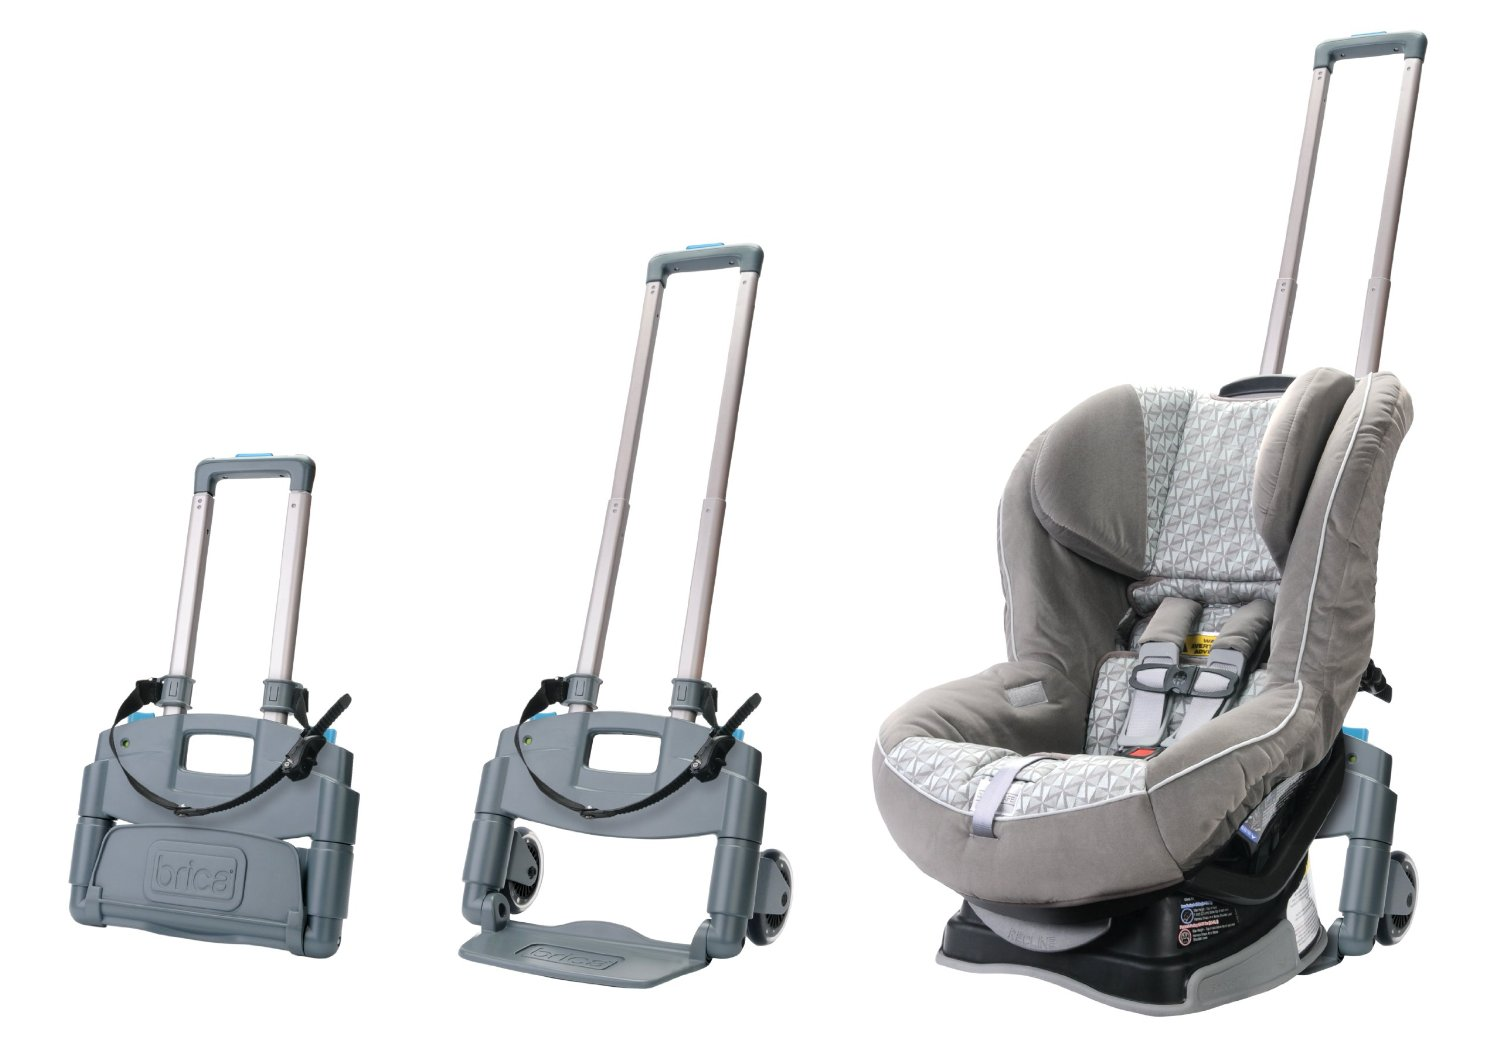 An easy way to get your car seat from the car to the airplane